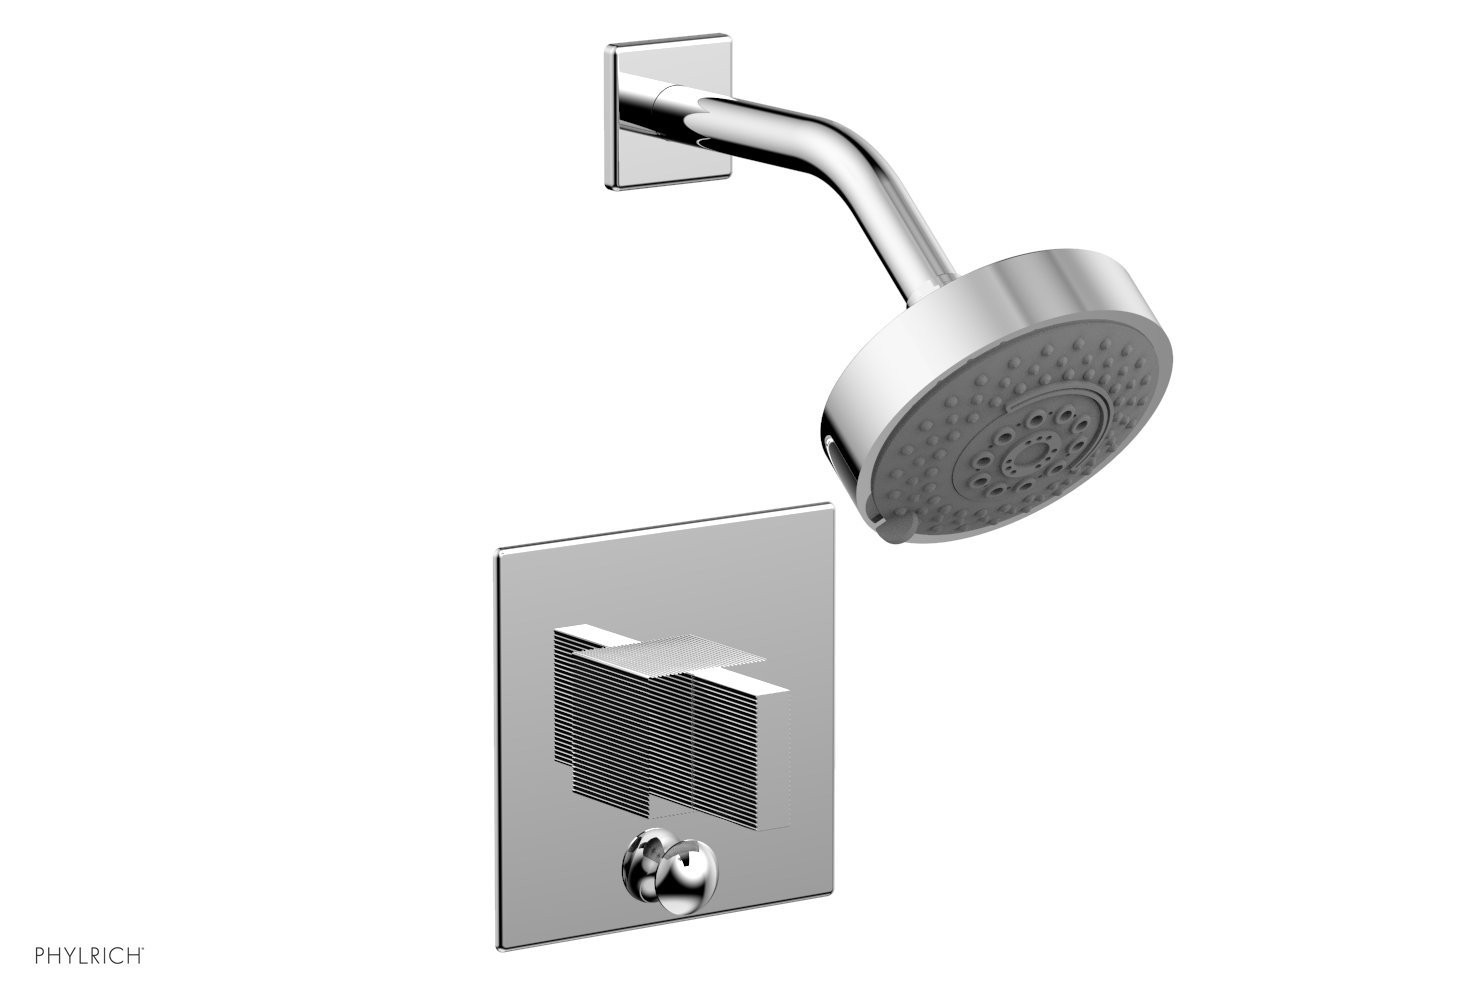 PHYLRICH 4-146 STRIA WALL MOUNT PRESSURE BALANCE SHOWER AND DIVERTER SET WITH BLADE HANDLE